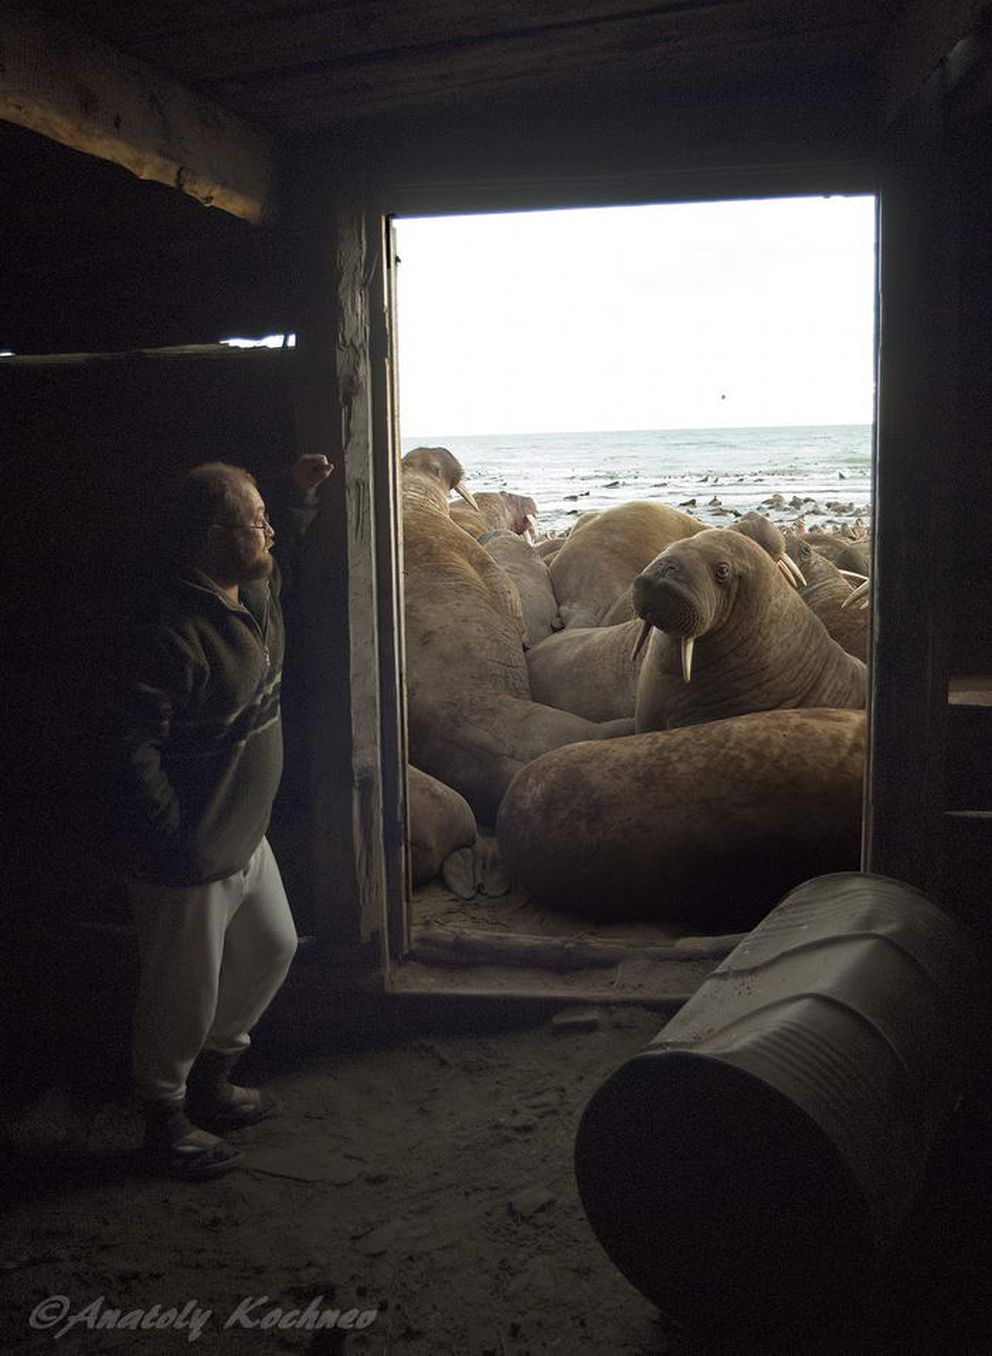 Cape Serdtse-Kamen has been reported as a walrus haulout since the 1920s. Up until 1990 it was used by walruses irregularly, only in autumn of years when sea ice was absent. During the 1990s and 2000s local residents reported that walruses began to hauling out annually in larger numbers.(Anatoly Kochnev / Mammals Ecology Lab Institute of Biological Problems of the North Far East Branch, Russian Academy of Sciences)